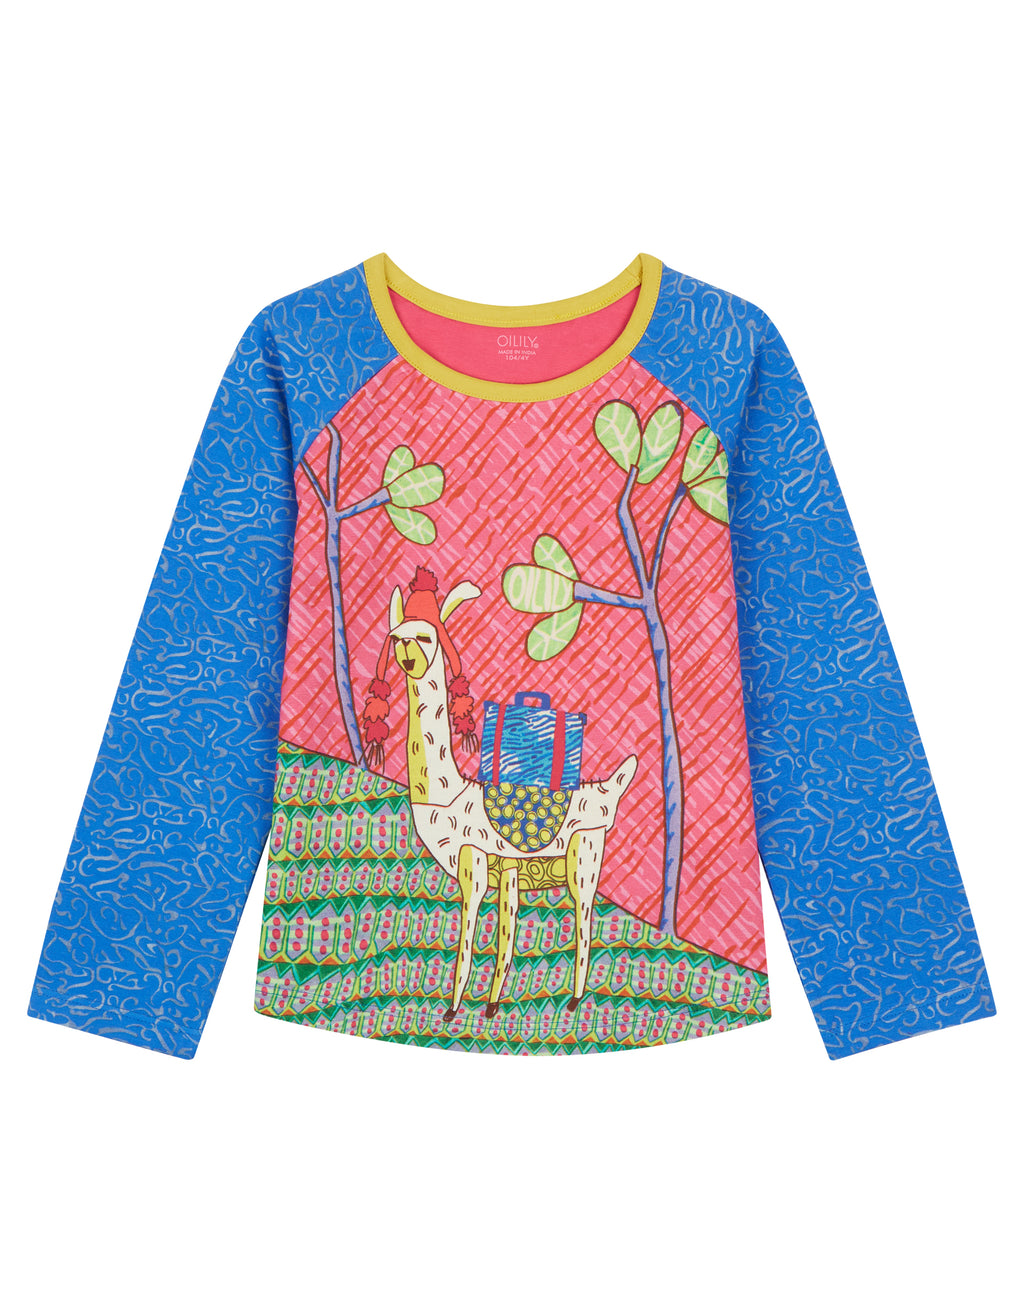 AW18 Oilily Girls Tumble T-Shirt 56 Waterpattern With Llama Montana